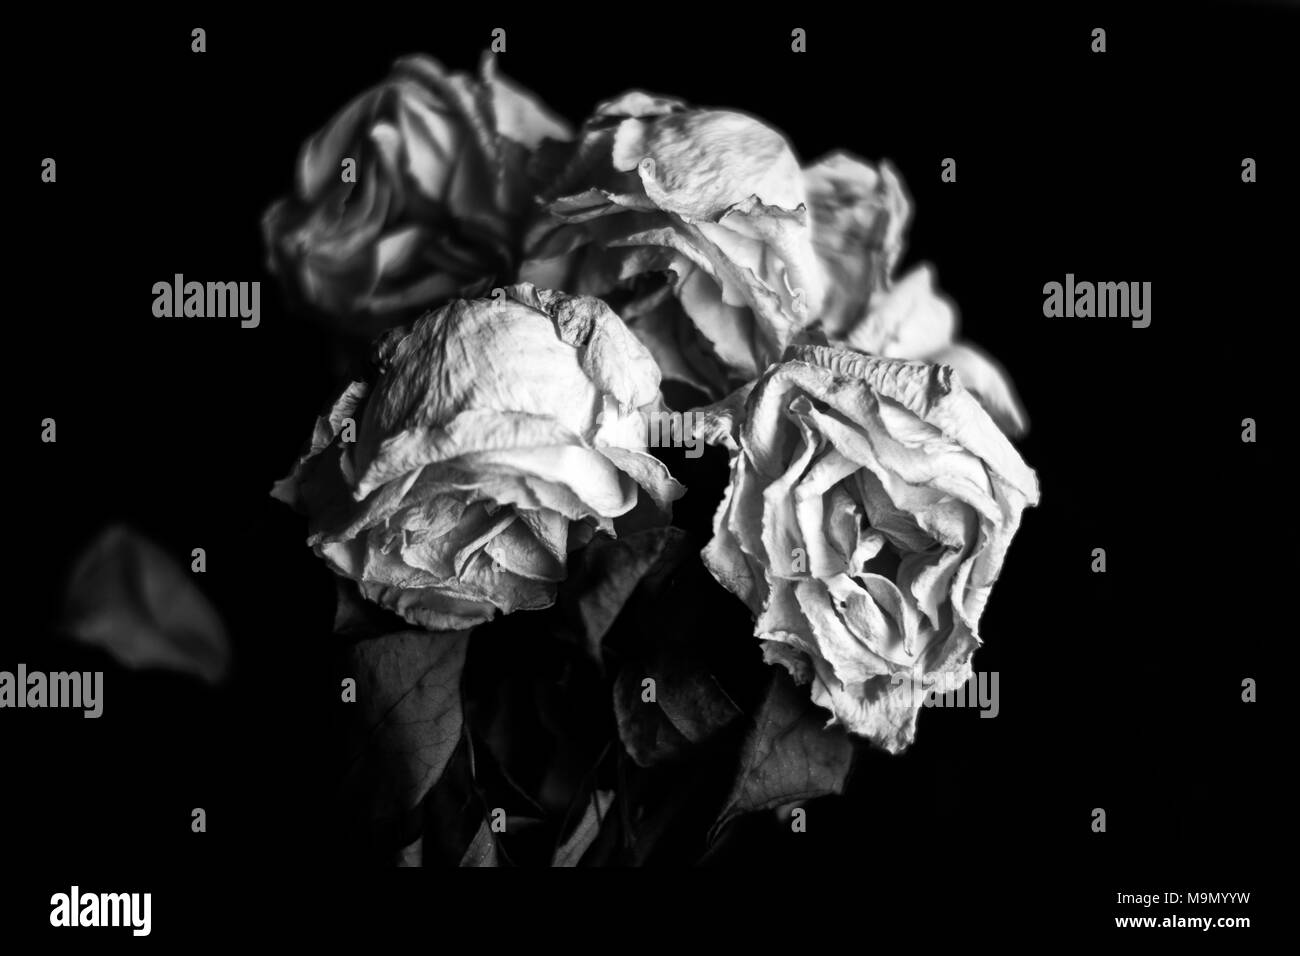 Close Up Of A Bunch Of Withered White Roses On Black Background In